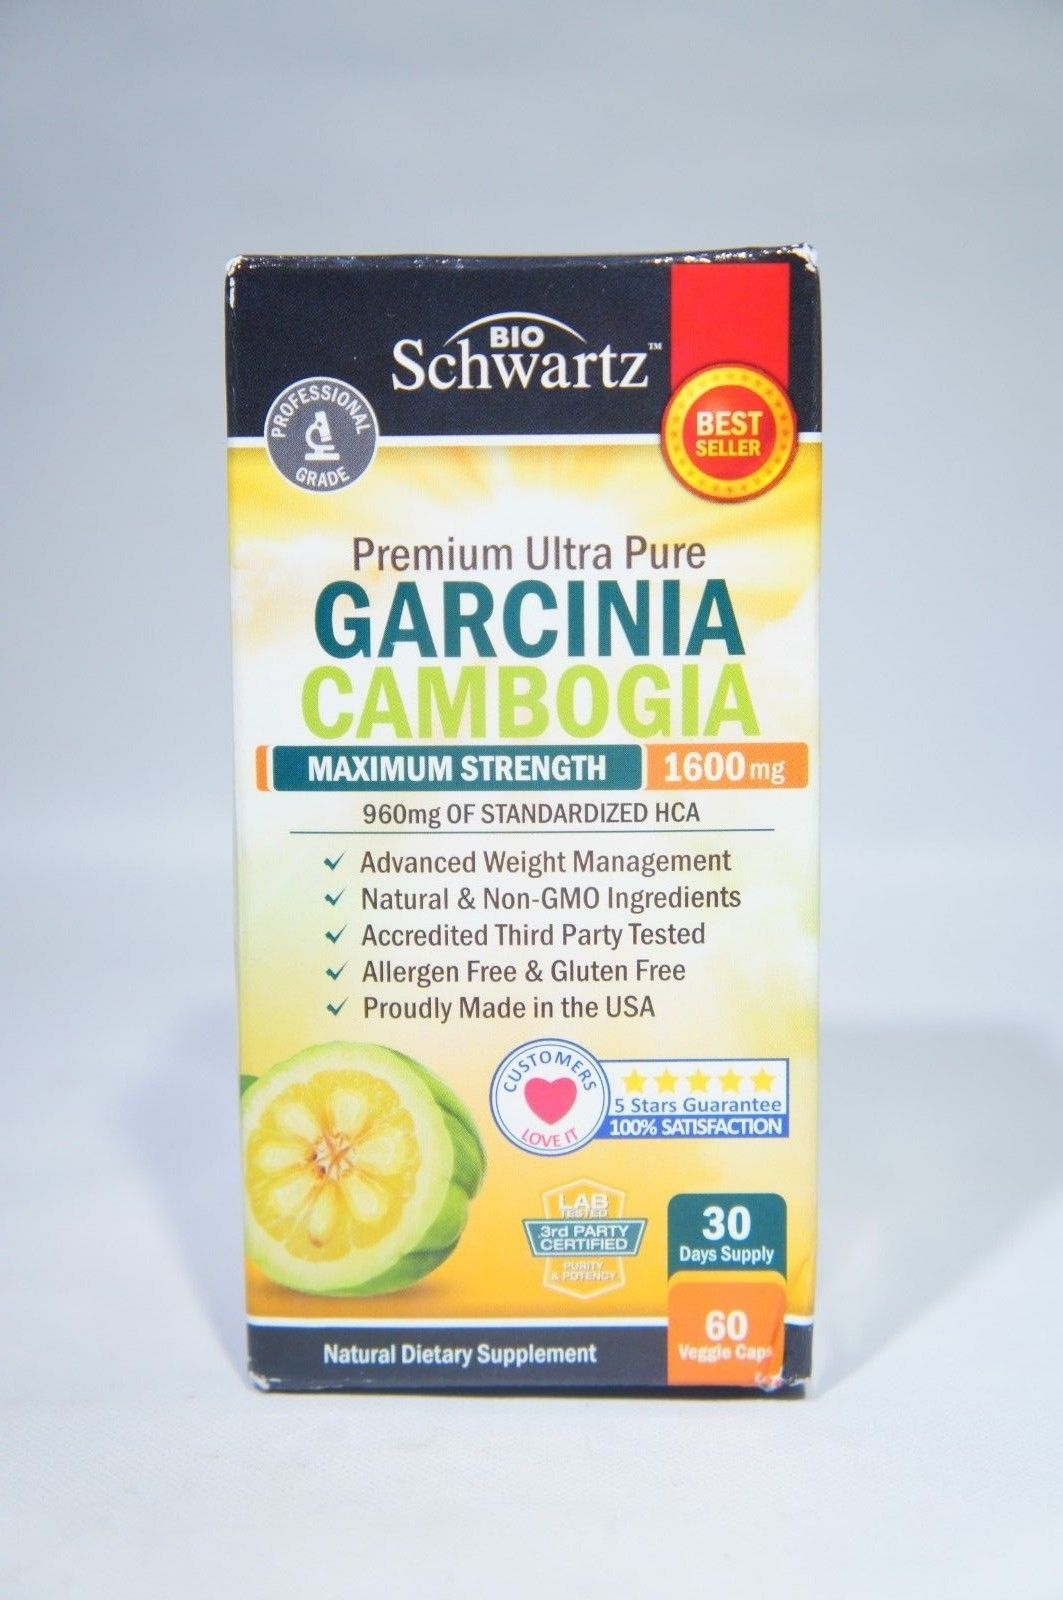 BioSchwartz Garcinia Cambogia 95% HCA Pure Extract with Chromium, 30 DAY SUPPLY, (60 VEGGIE CAPS)